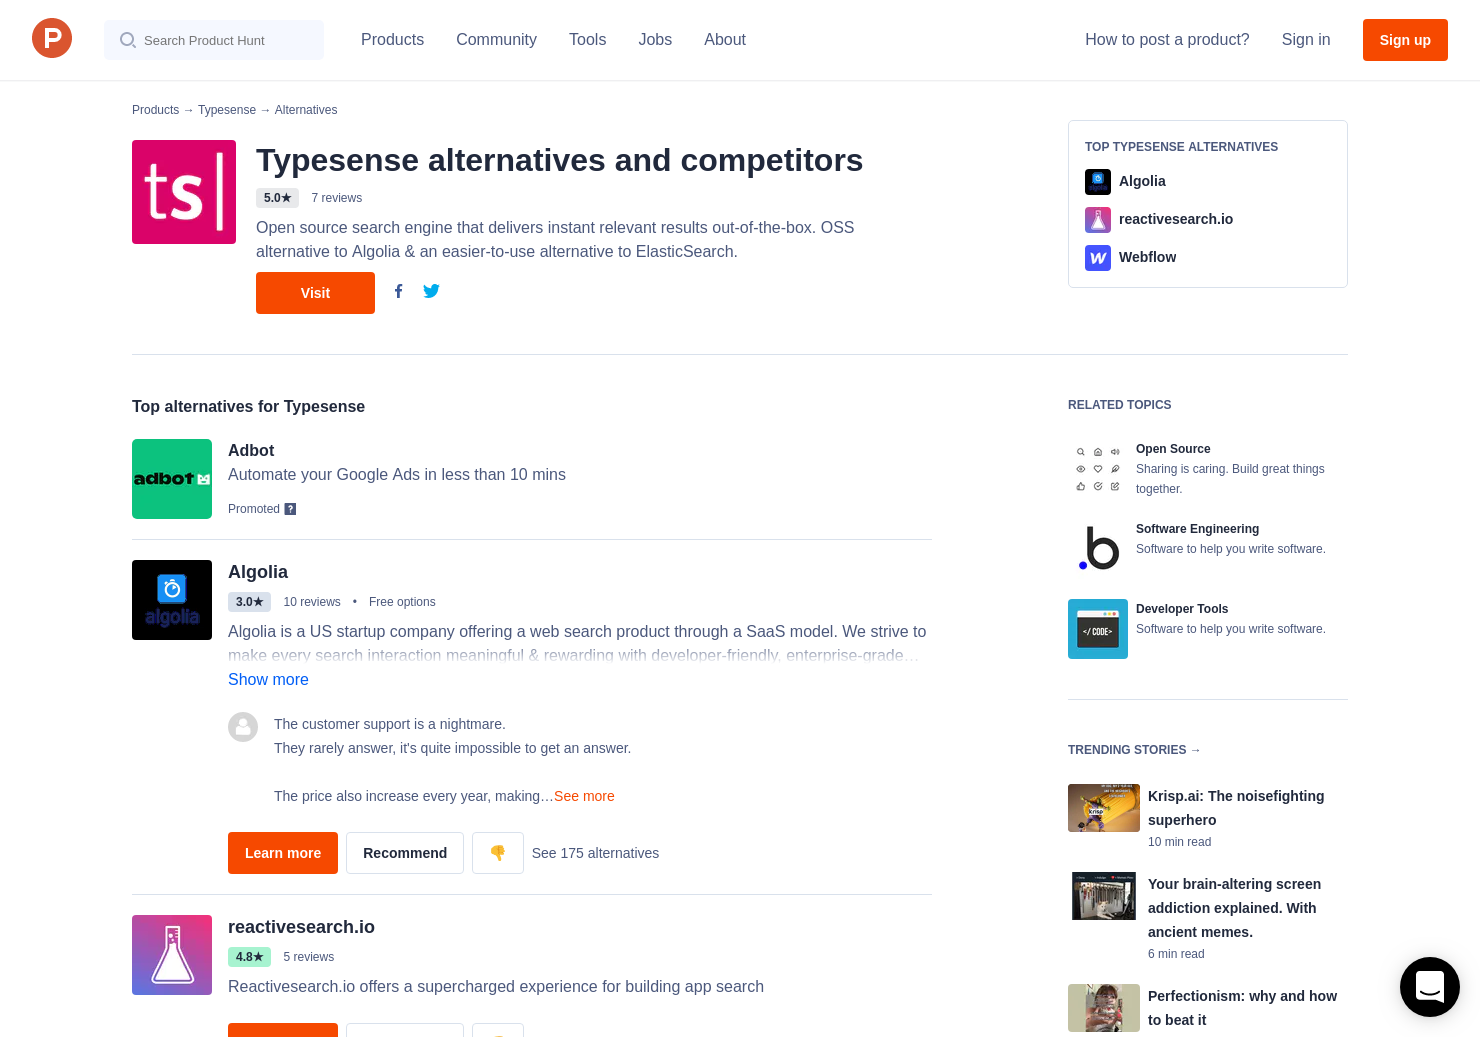 7 Alternatives to Typesense | Product Hunt